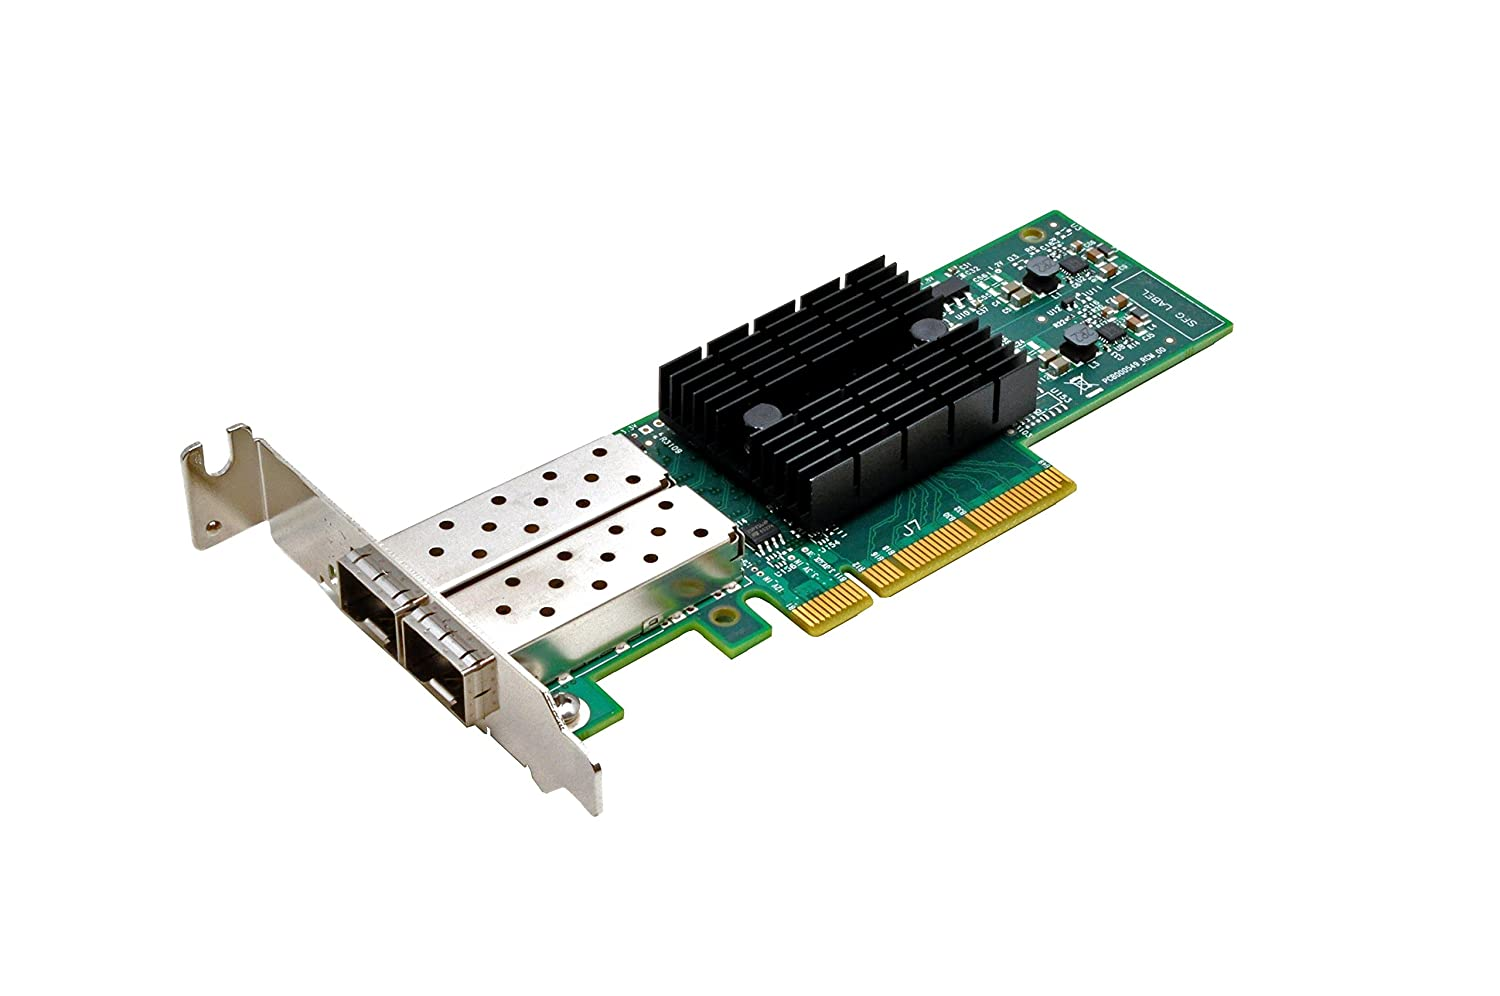 amazon co uk pcmcia cards computers accessories synology e10g17 f2 internal ethernet networking cards wired pci e ieee 802 3ad ieee 802 3ae ethernet 5 35 °c 20 60 °c